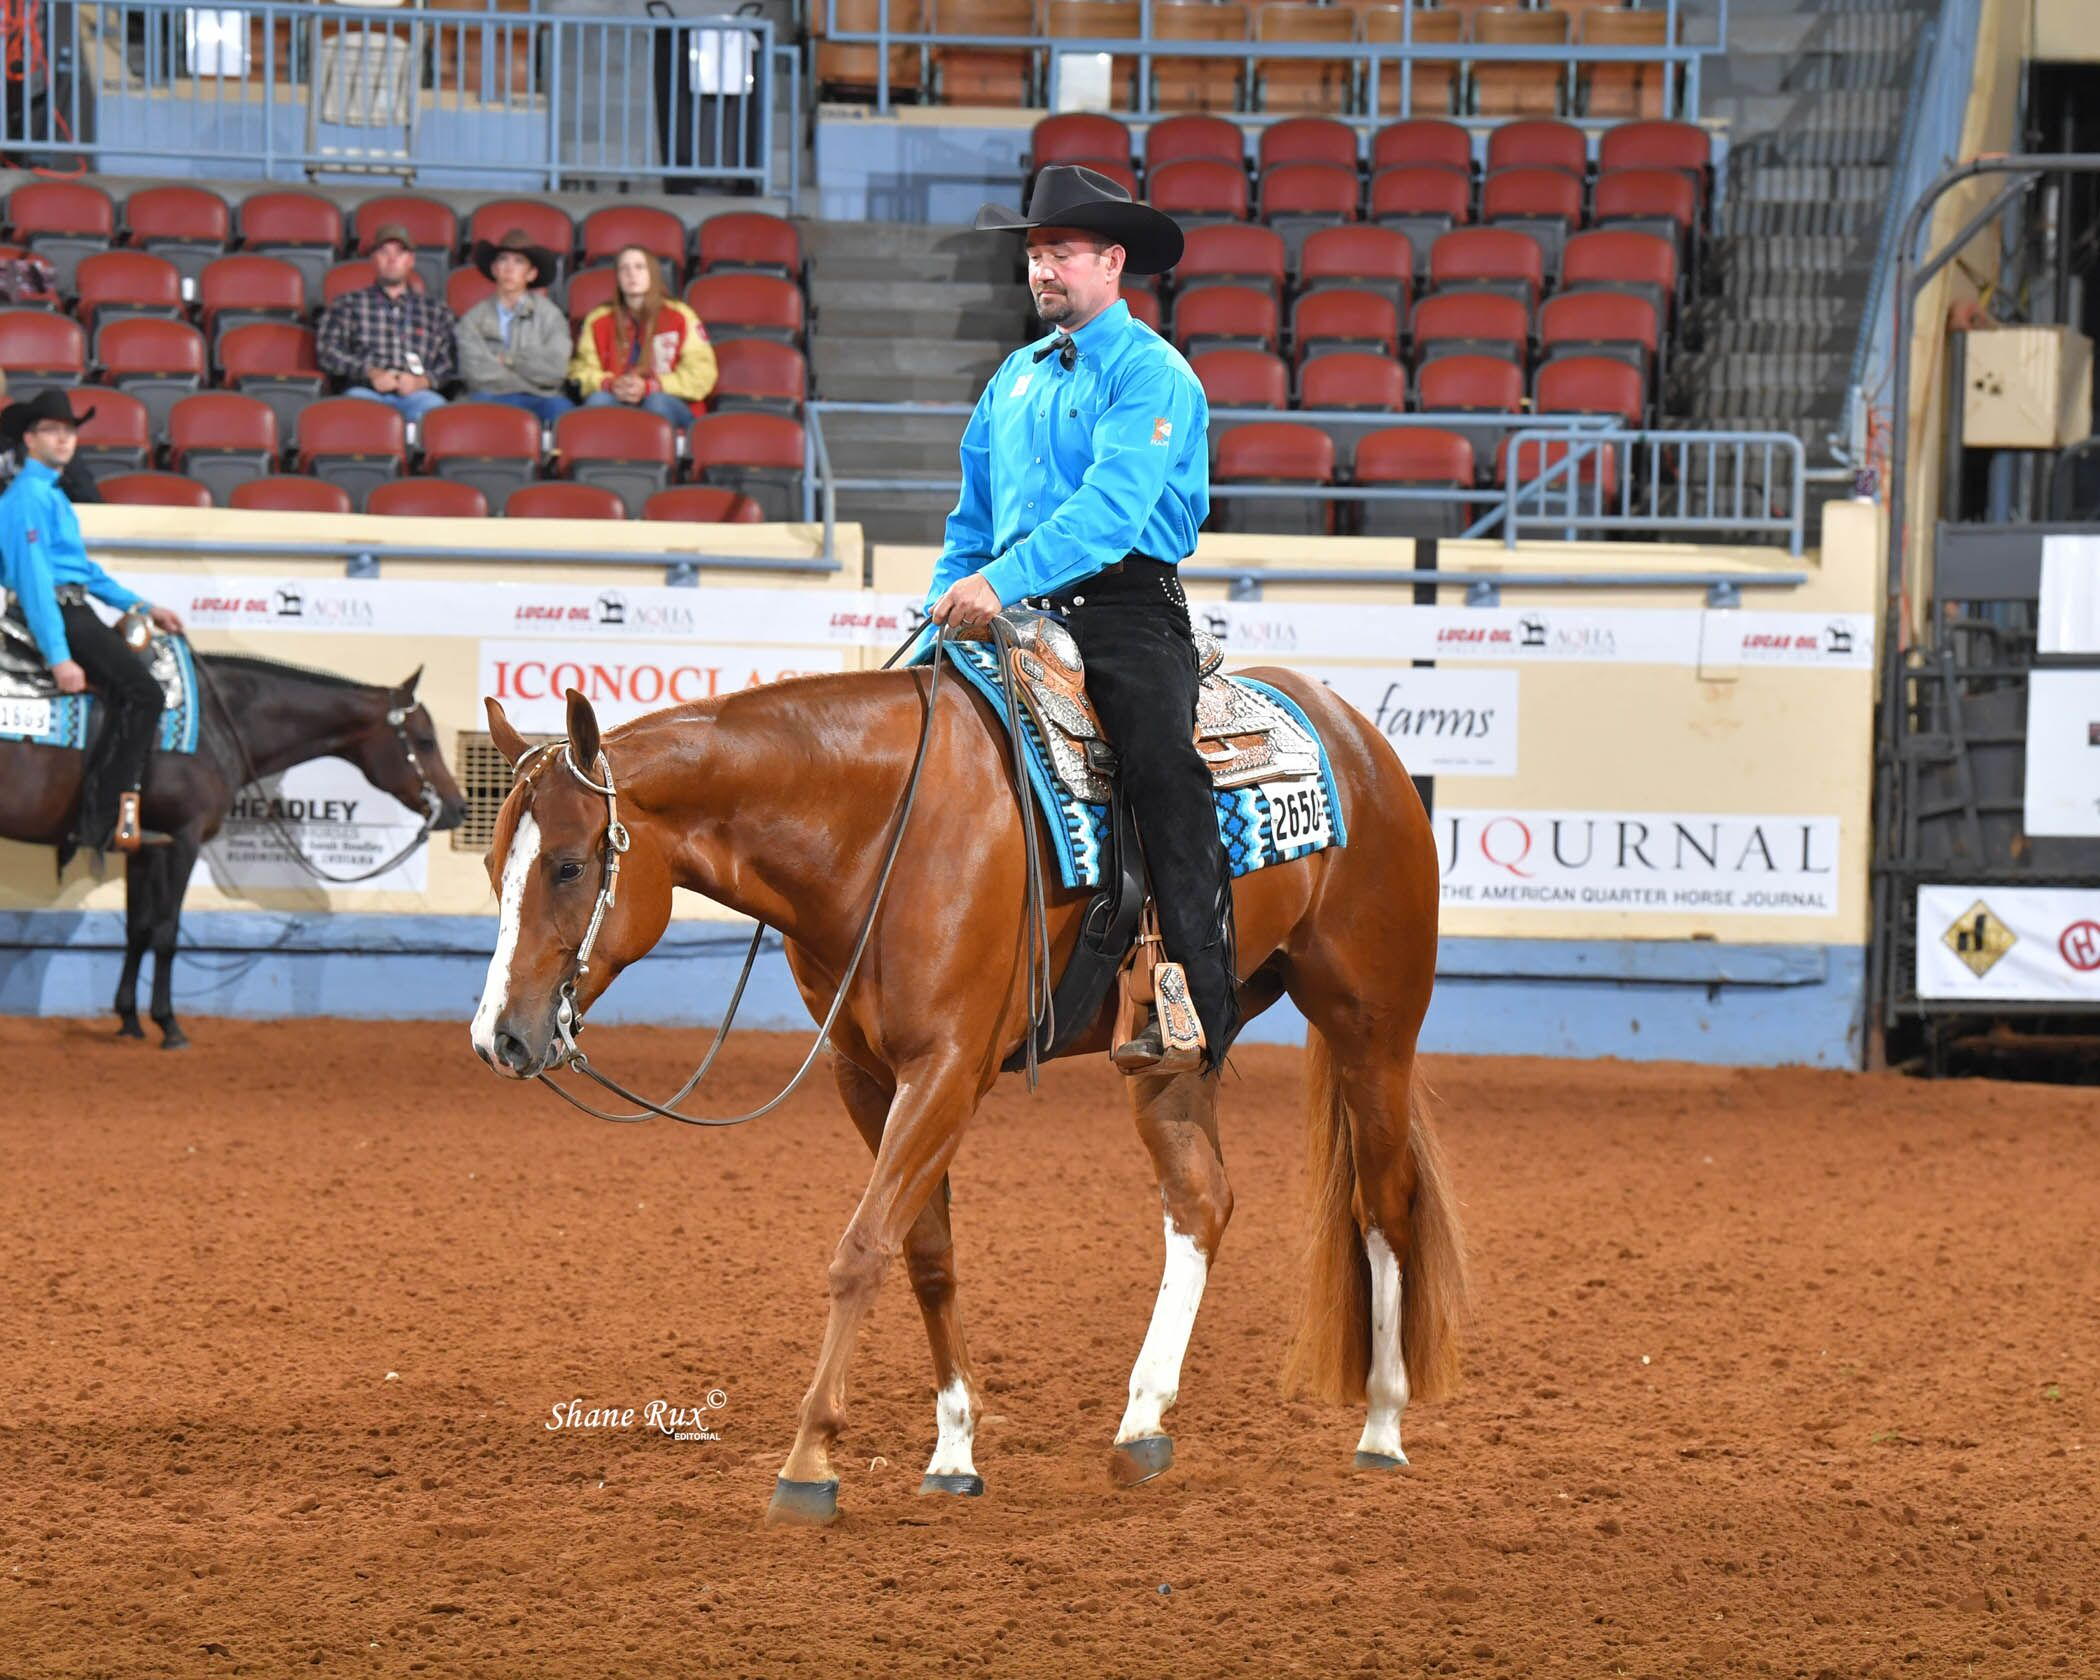 2020 Lucas Oil AQHA World Championship Show Junior Western Pleasure World Champion